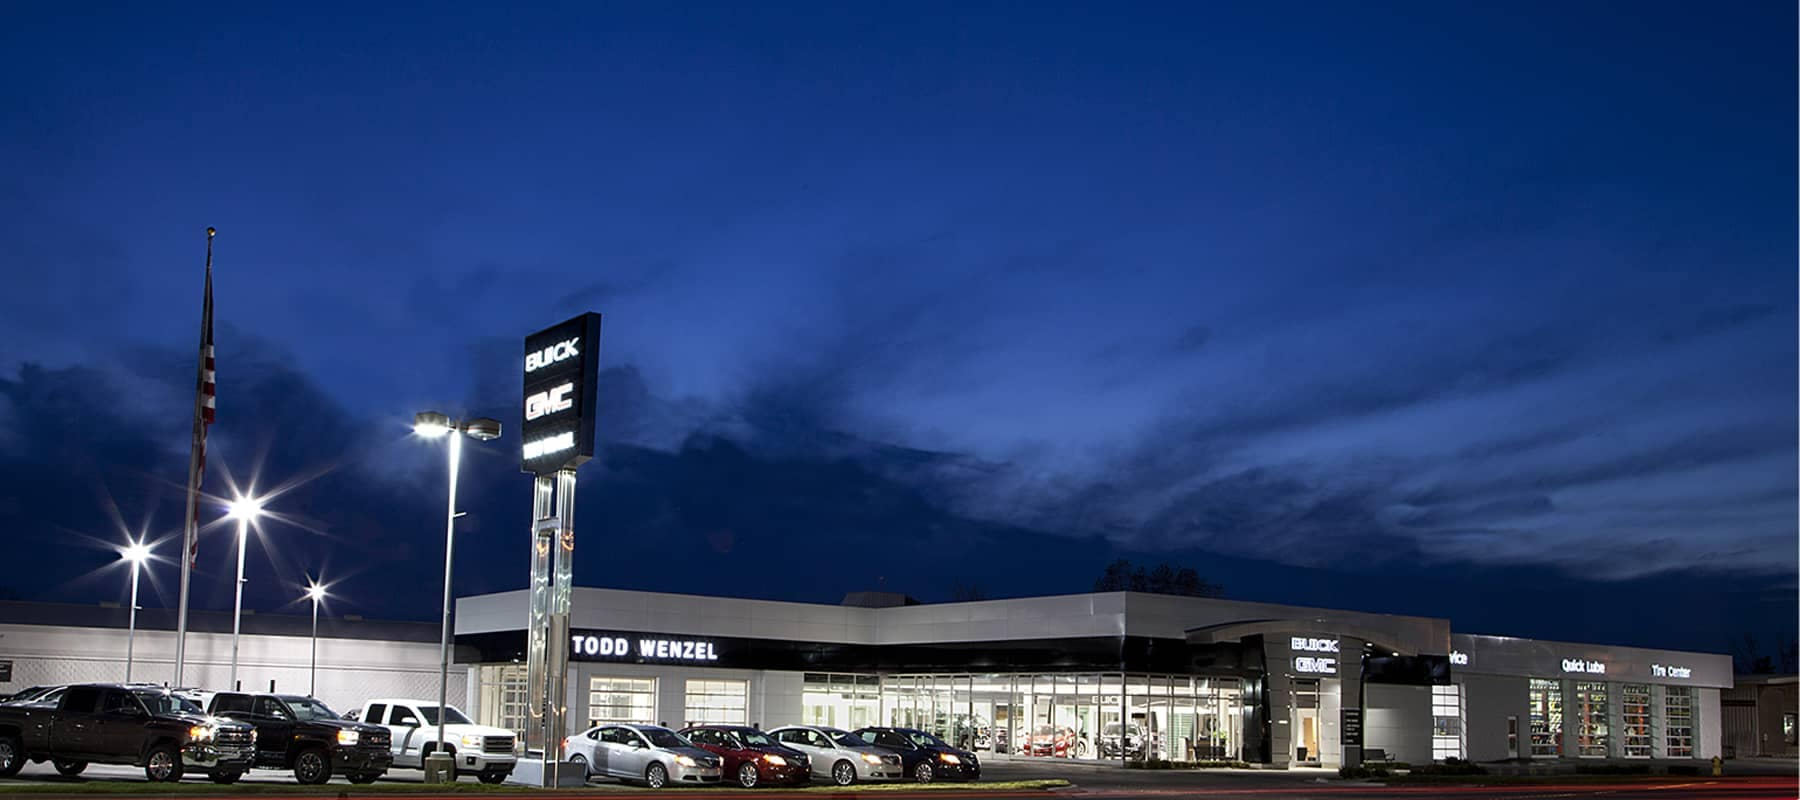 Exterior Shot of Todd Wenzel Buick GMC of Davidson